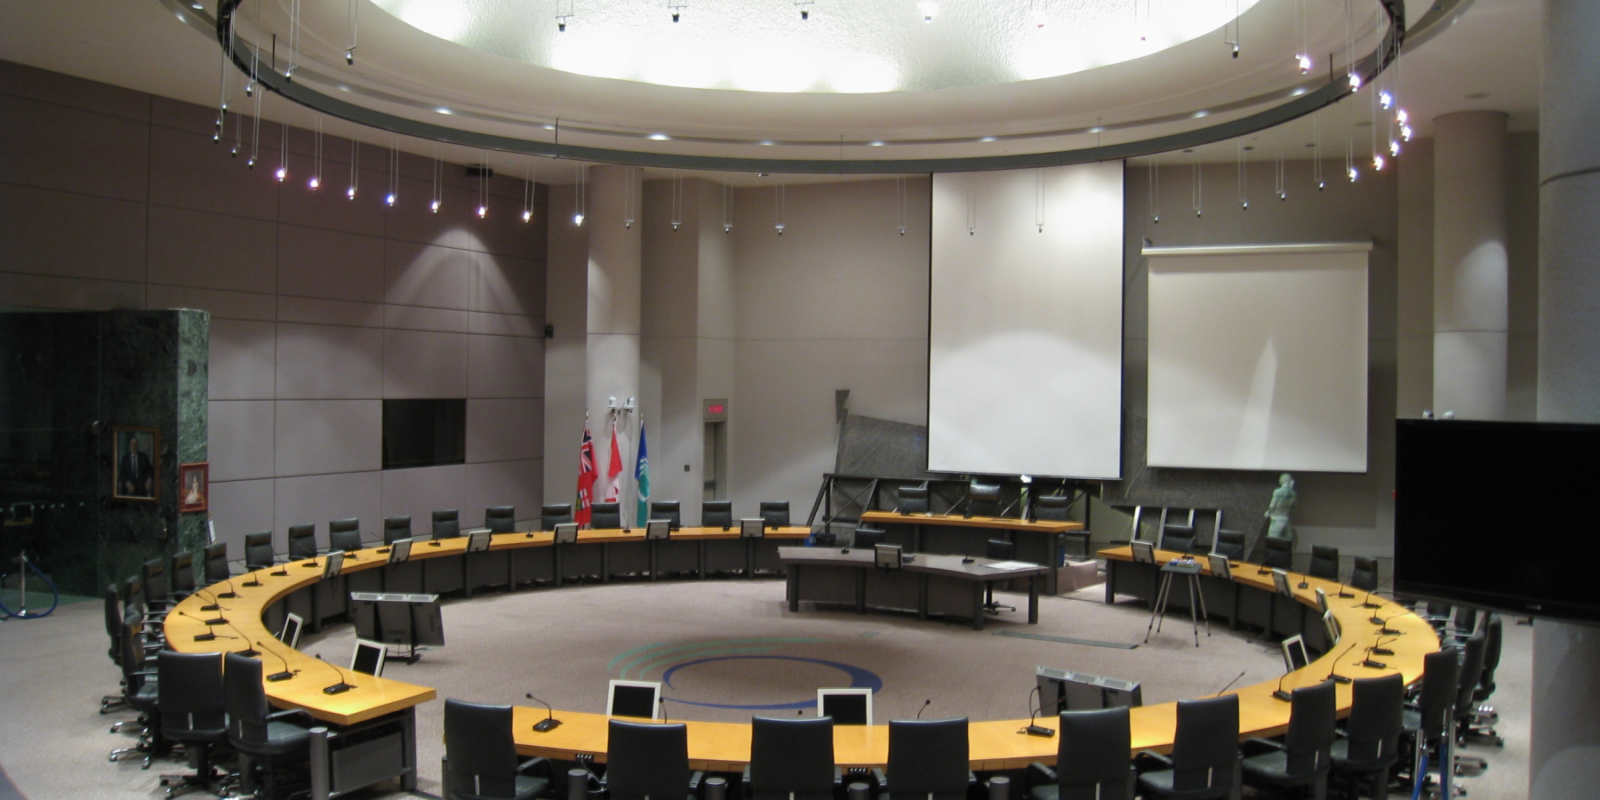 Virtual Public Consultation on the City's 2021 Budget: Oct. 22